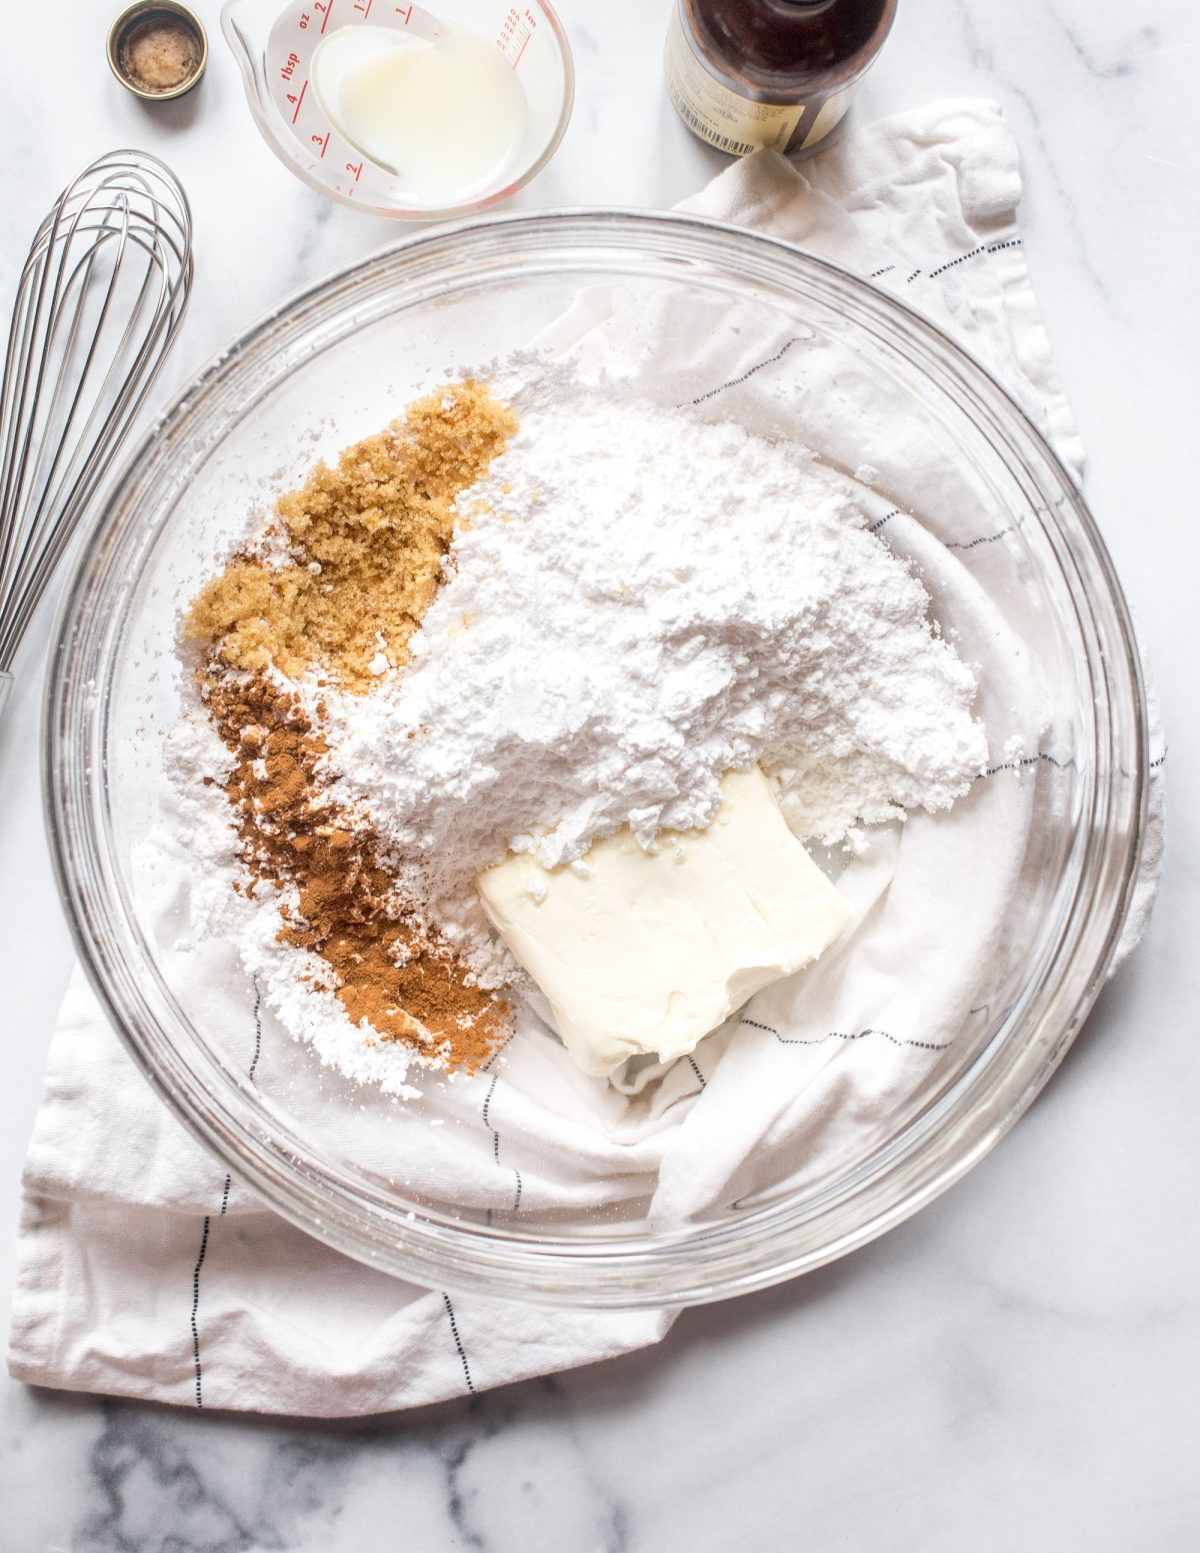 Powdered sugar, cinnamon, and softened cream cheese in a glass mixing bowl